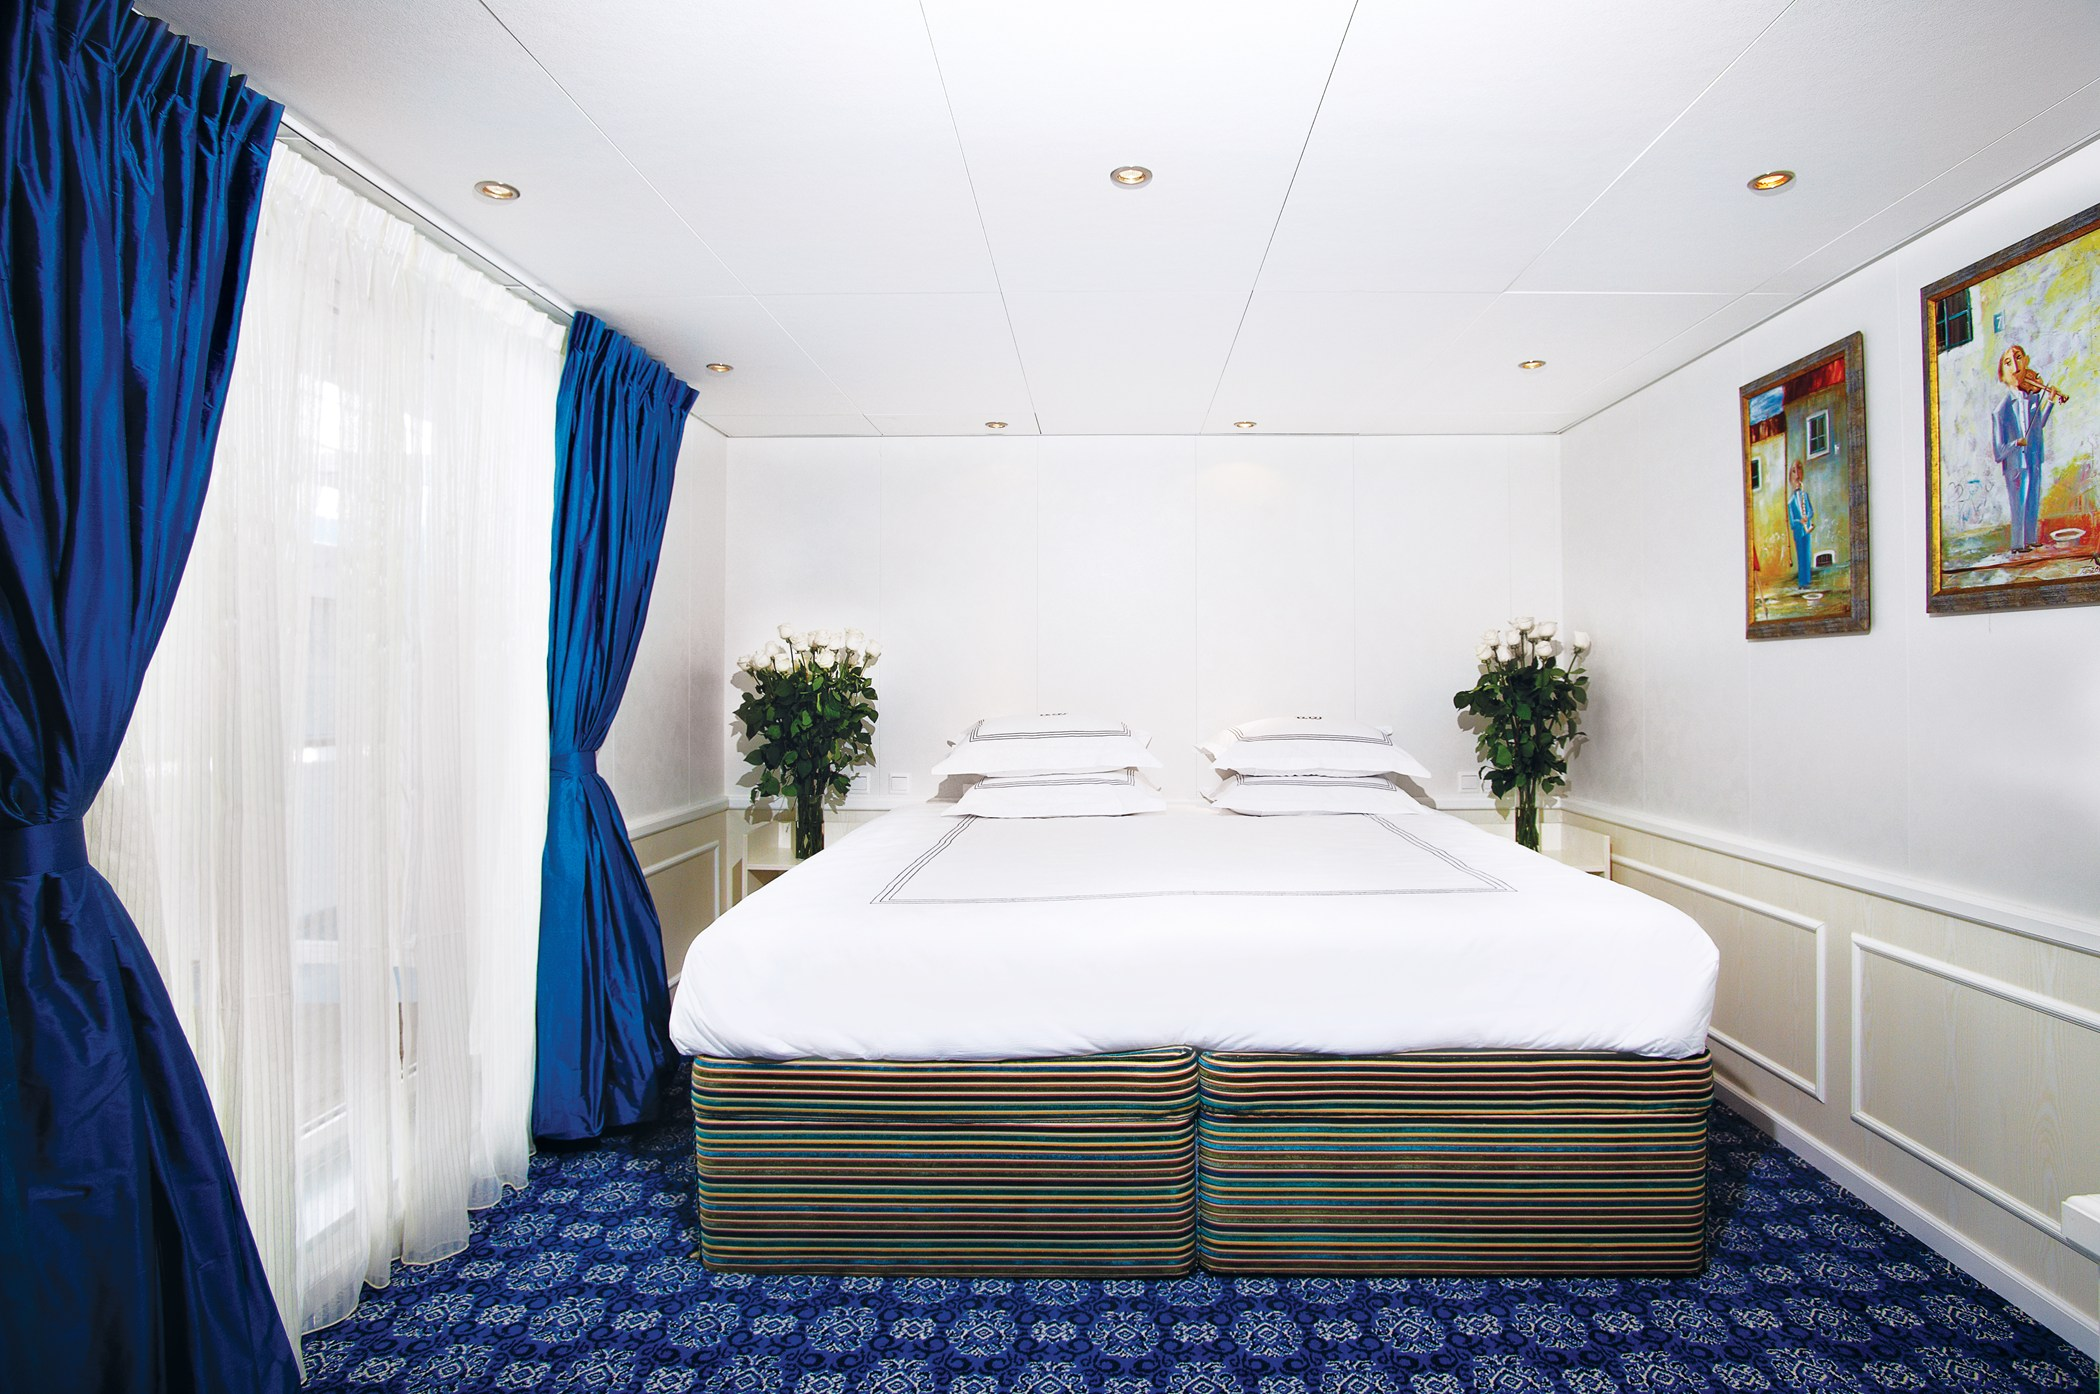 UNIWORLD Boutique River Cruises River Victoria Accommodation Presidential Suite Bedroom.jpg